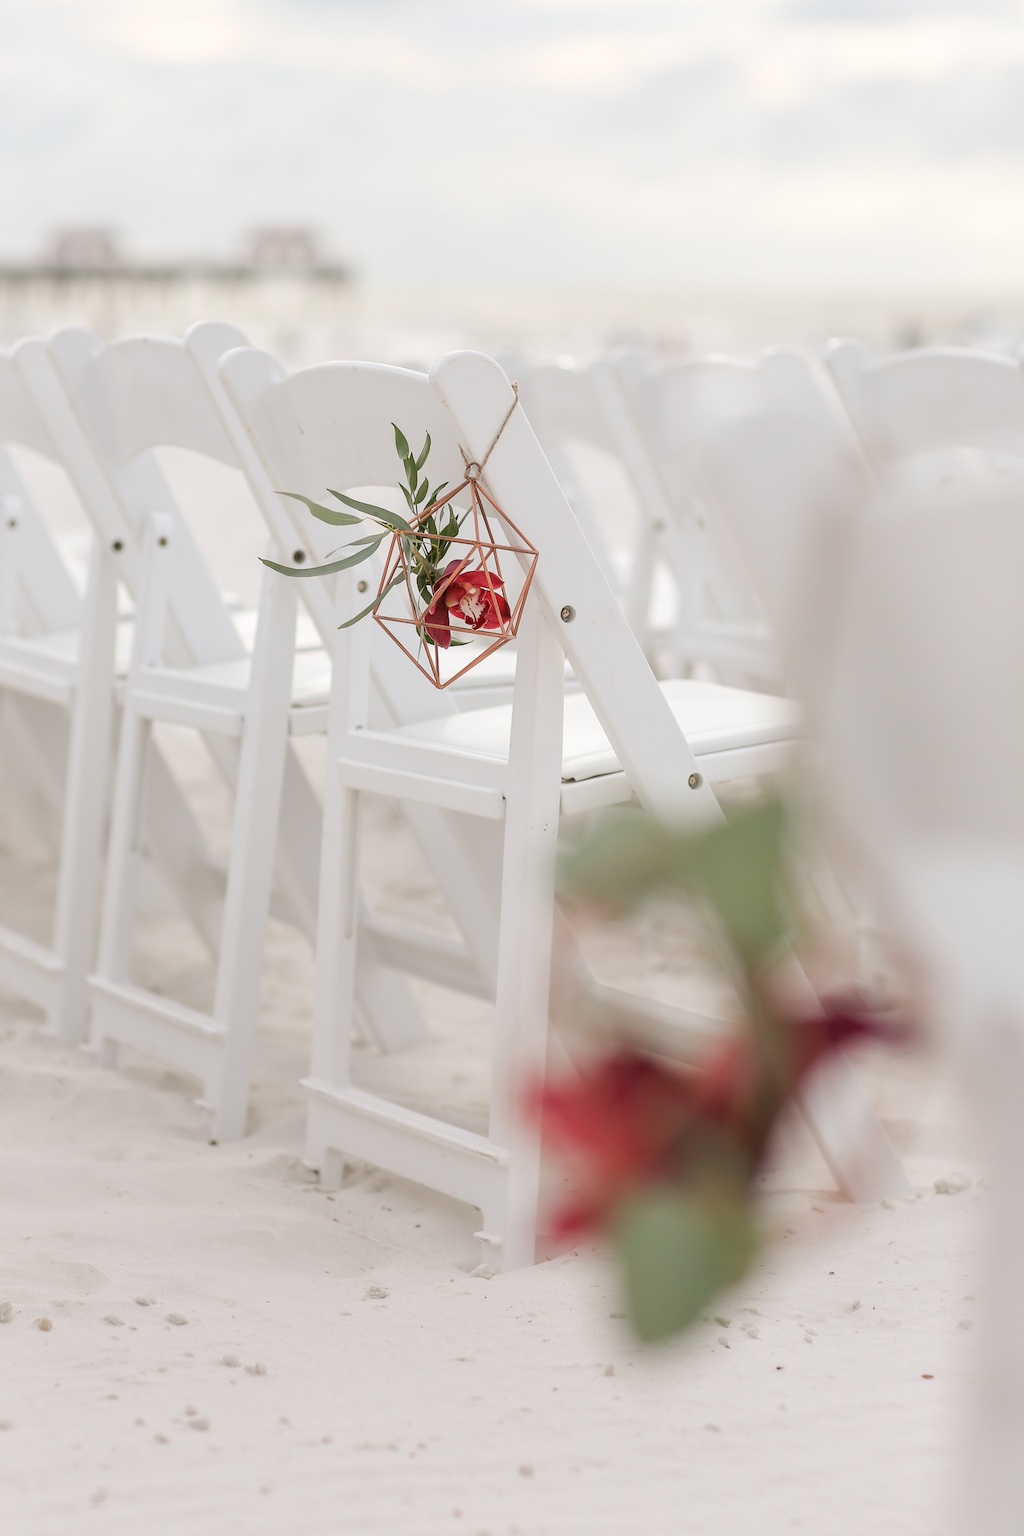 Florida Beach Wedding Ceremony Decor, White Folding Chairs with Geometric Vase and Red and Green Floral Inside | Tampa Bay Wedding Photographer Lifelong Photography Studios | Clearwater Beach Hotel Wedding Venue Hilton Clearwater Beach